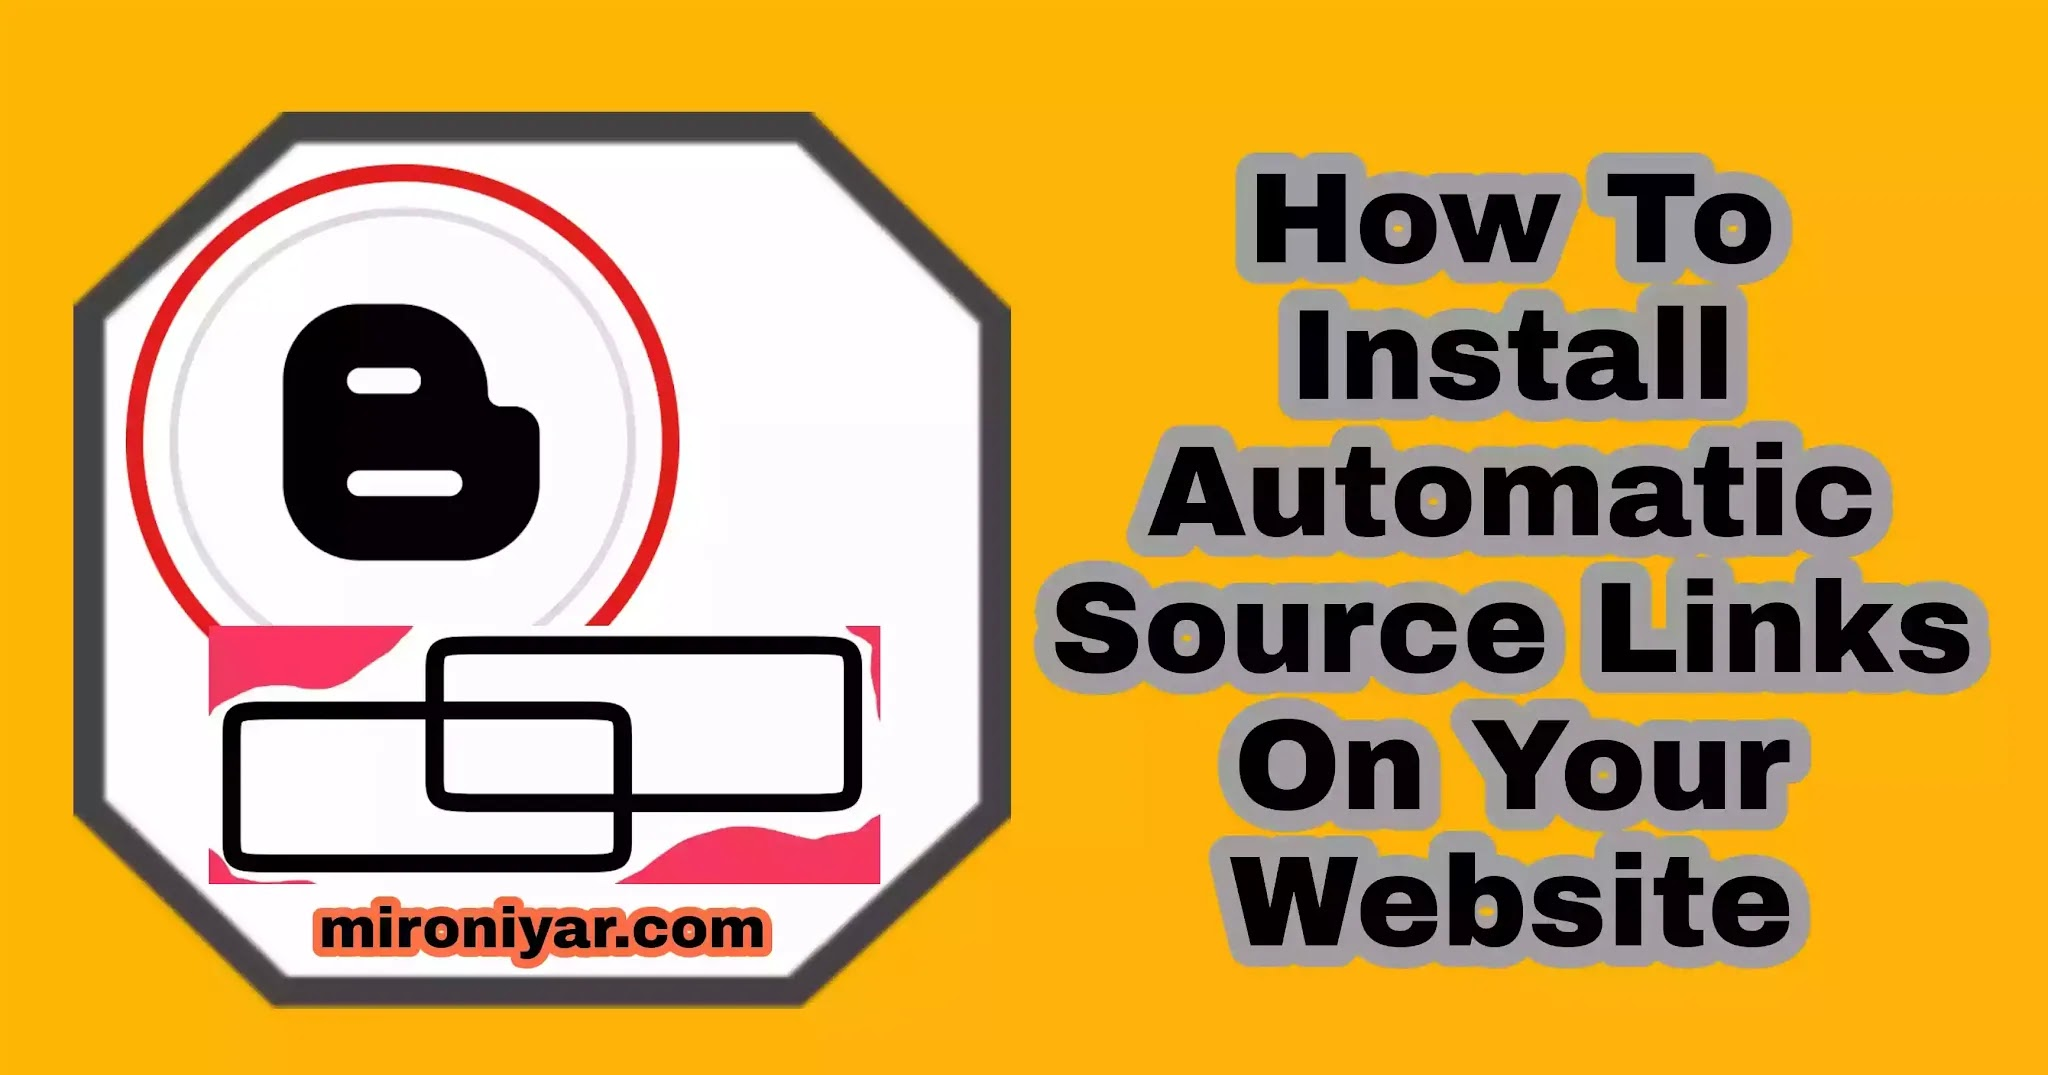 How To Install Automatic Source Links On Your Blogger Website